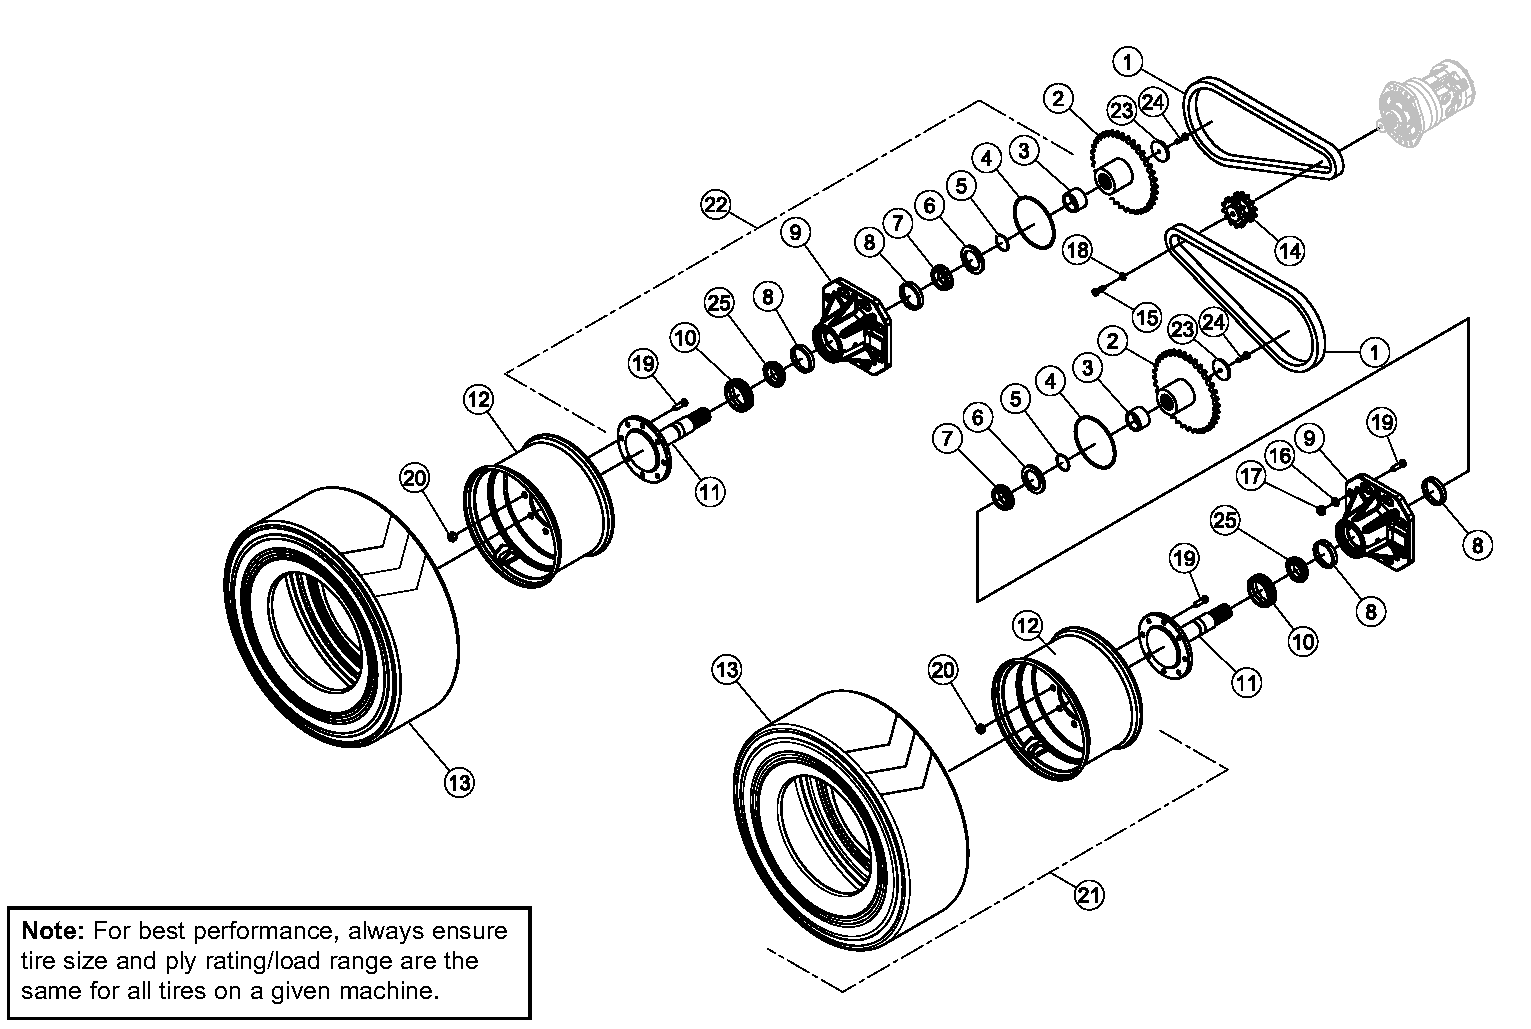 Diagram 21-A Final Drive Assembly - Right Side